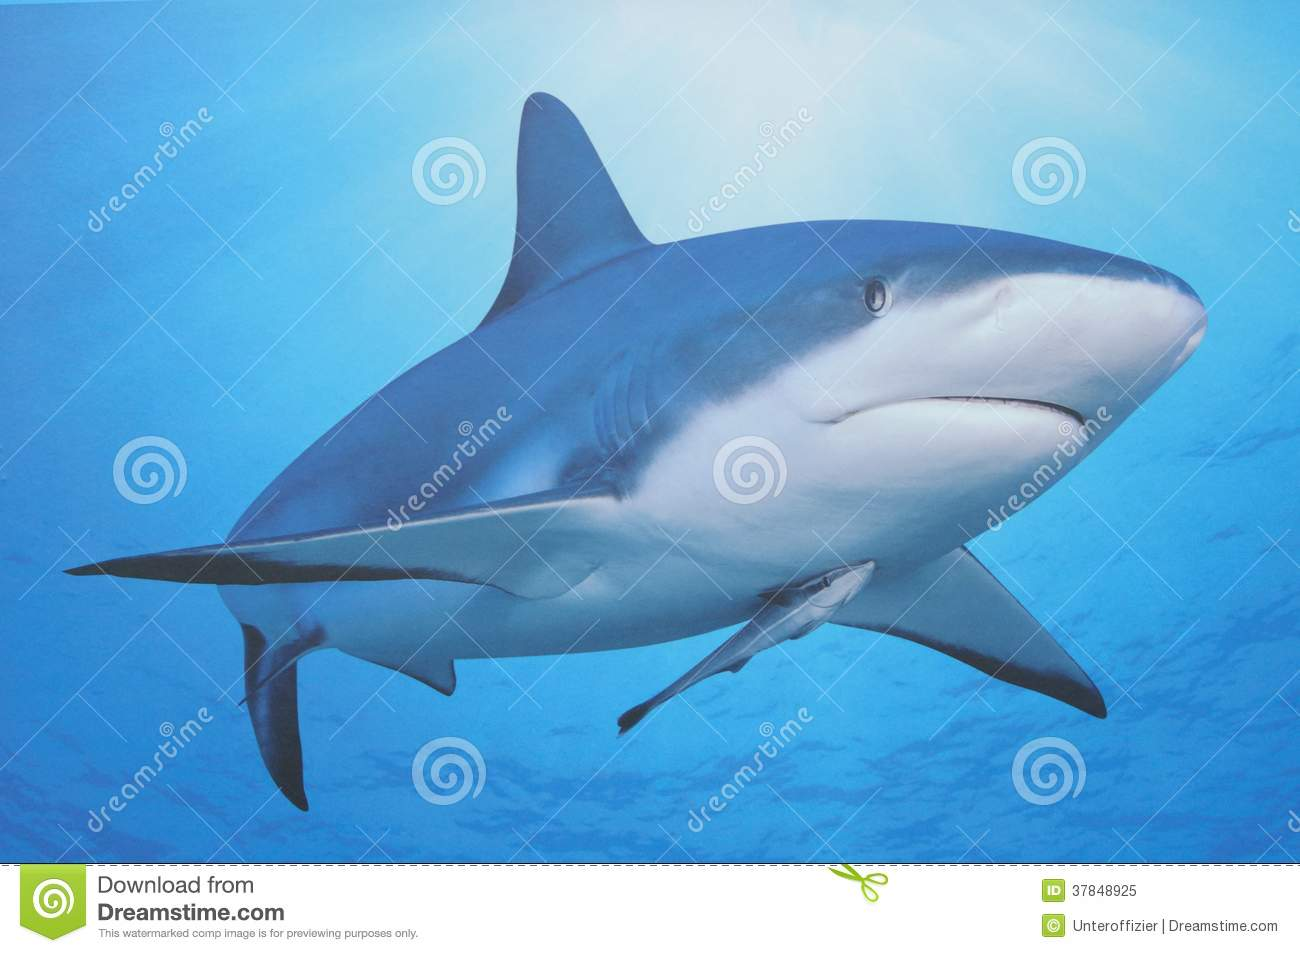 Shark and its baby